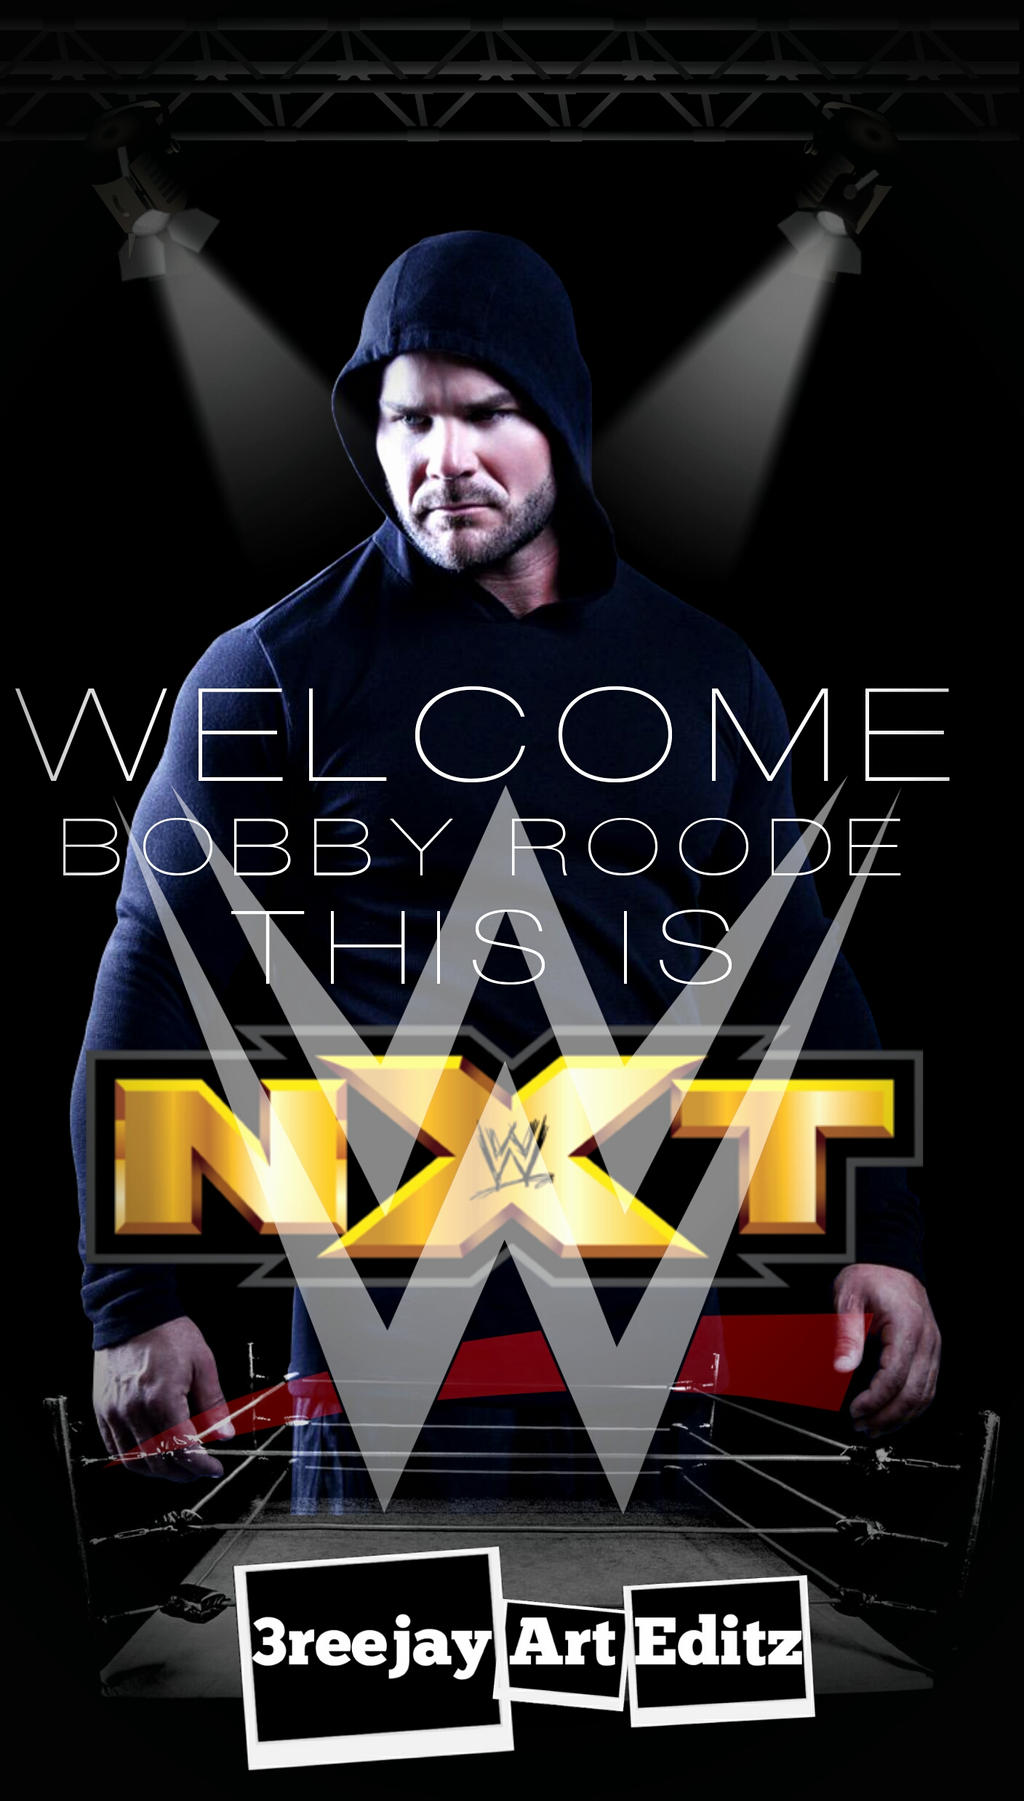 WWE BOBBY ROODE WELCOME TO THE BIG TIME NXT By 3REEJAYARTEDITS